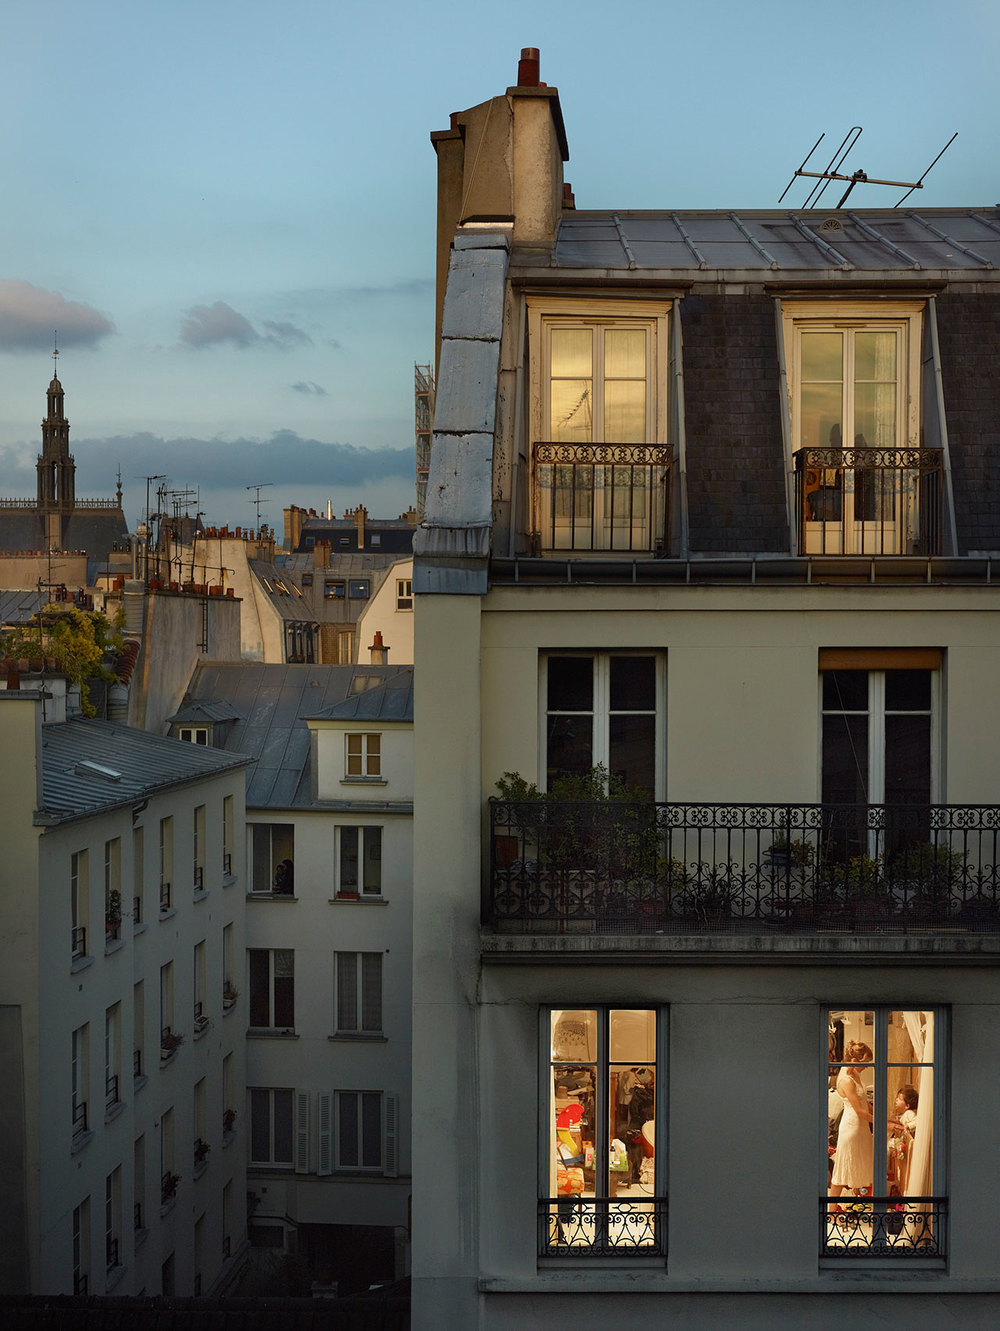 s1_out_my_window_gail_albert_halaban_vis_a_vis_paris_yatzer.jpg